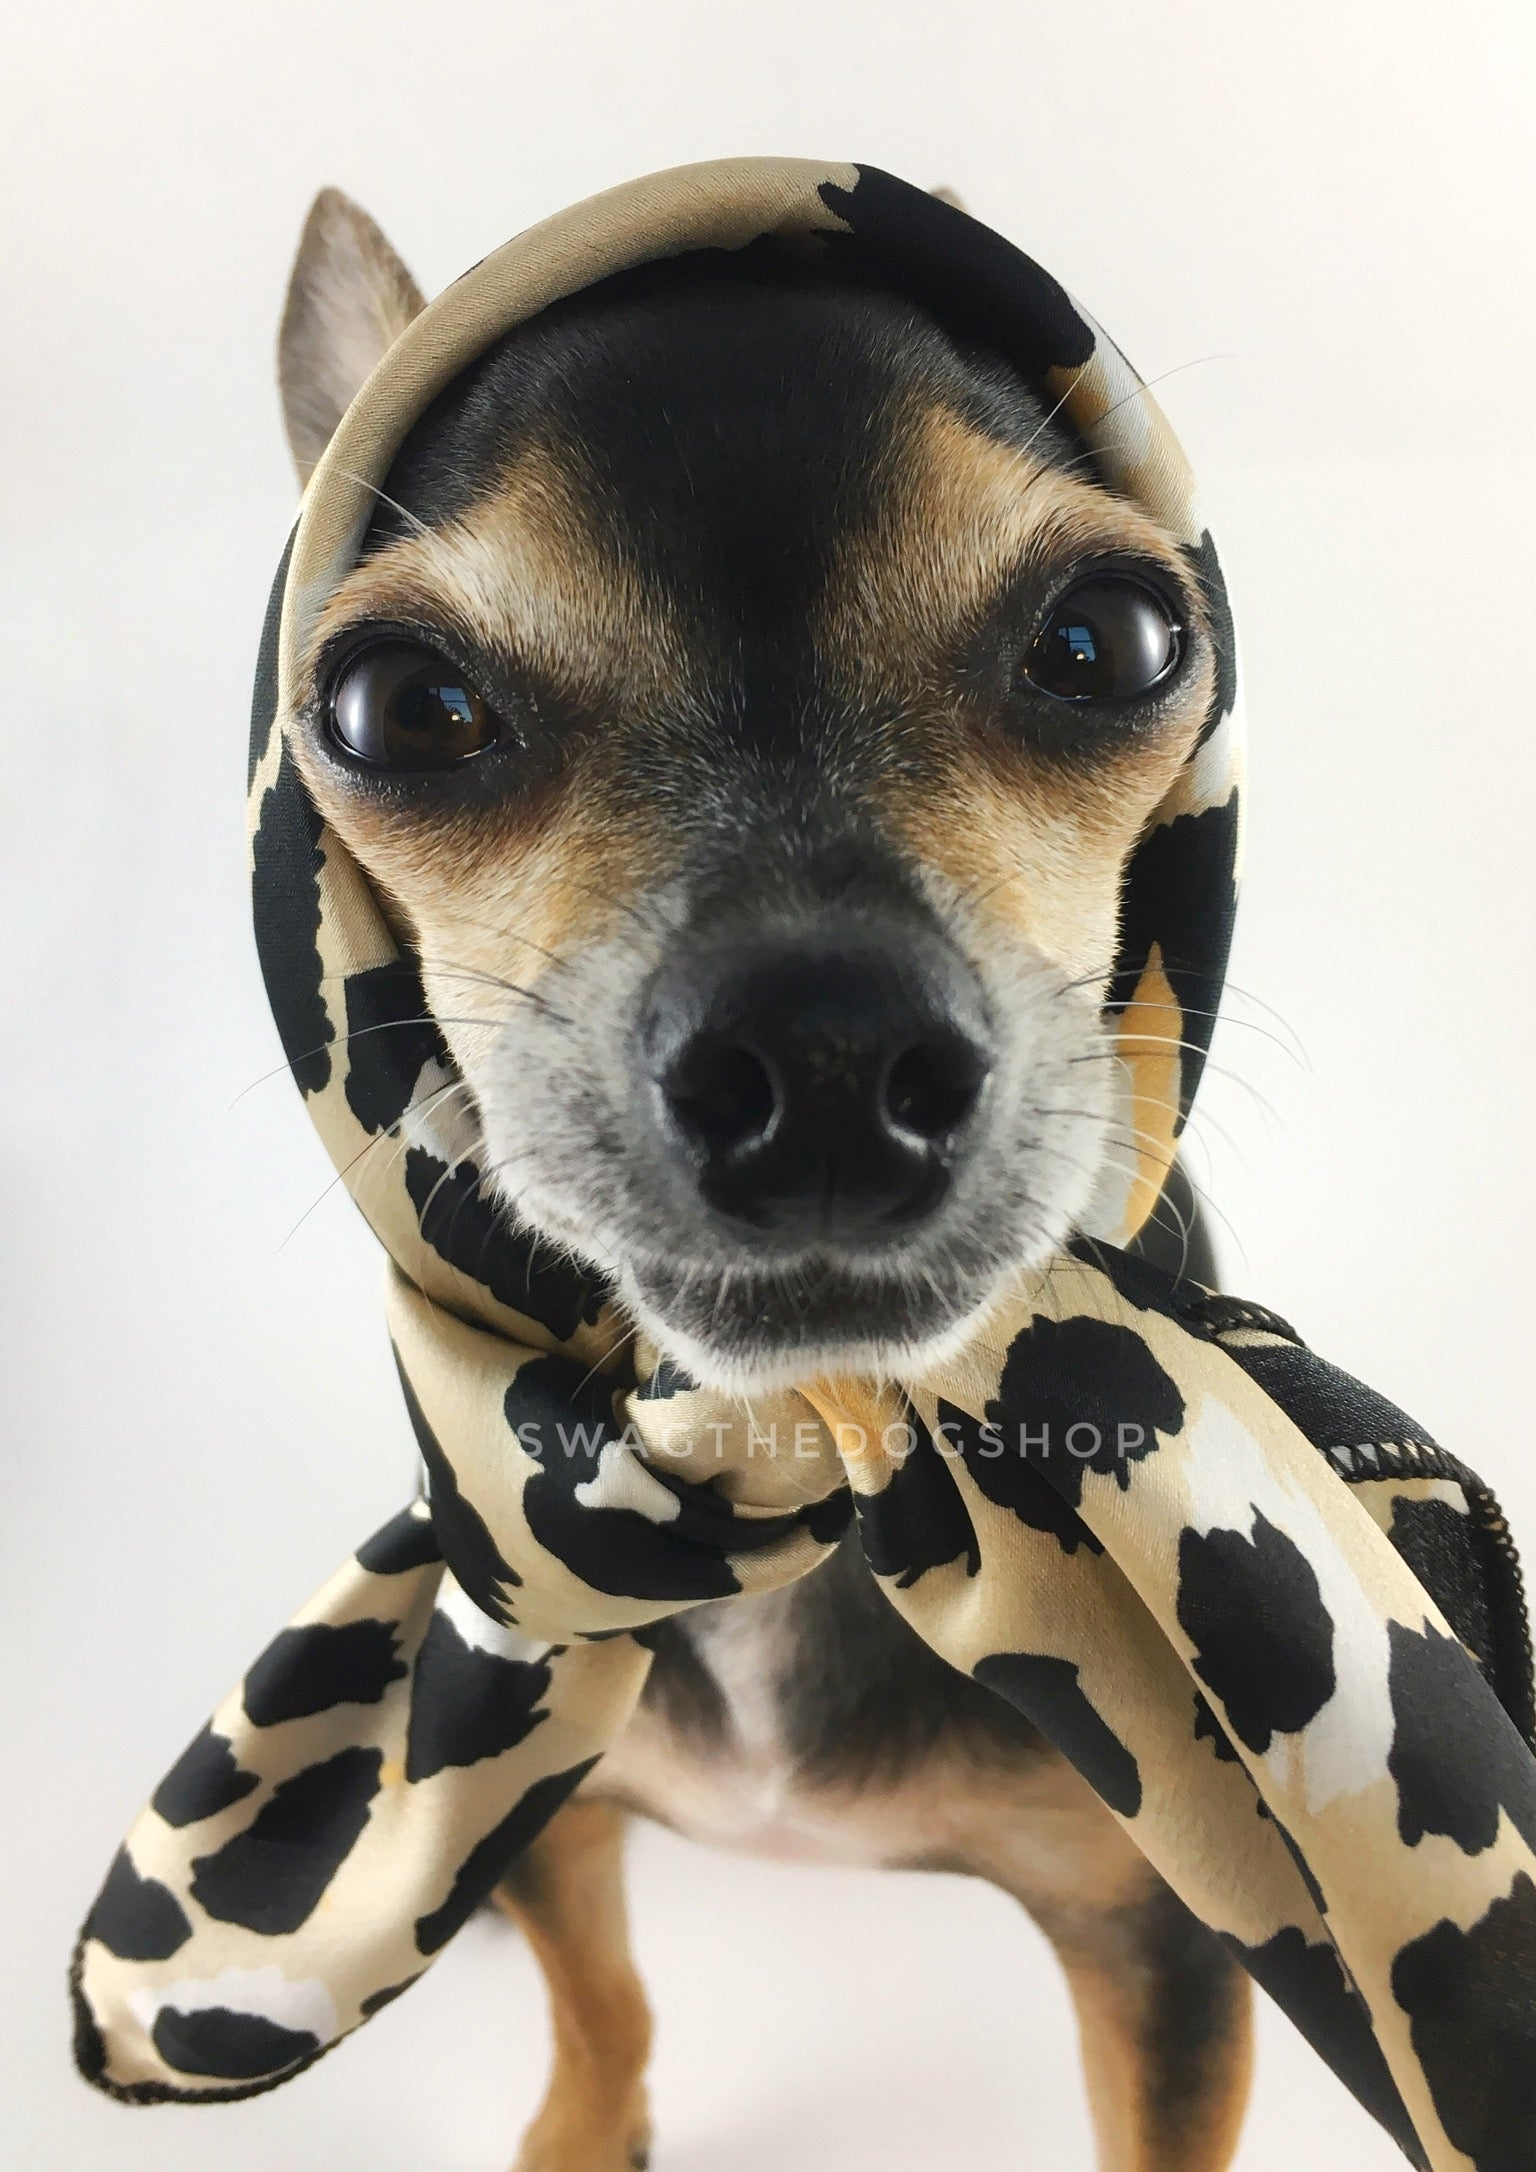 Fierce Beige with Yellow Swagdana Scarf - Bust of Cute Chihuahua Wearing Swagdana Scarf as Headscarf. Dog Bandana. Dog Scarf